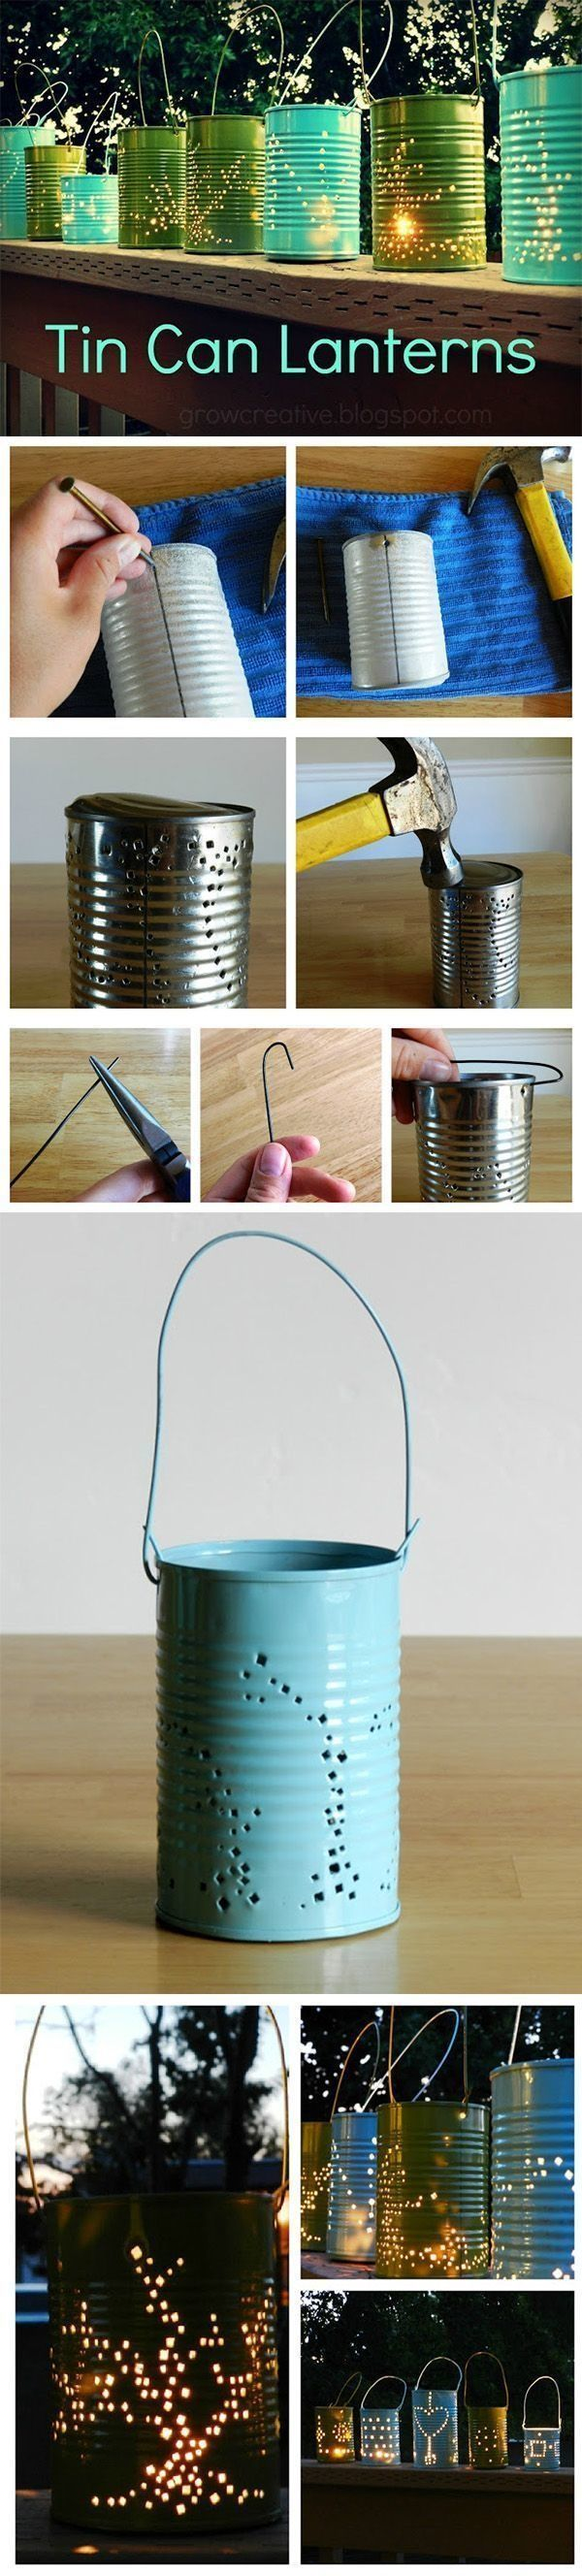 Wedding ideas with lanterns  Create cute lanterns out of tin cans and wire  Garden Decorating